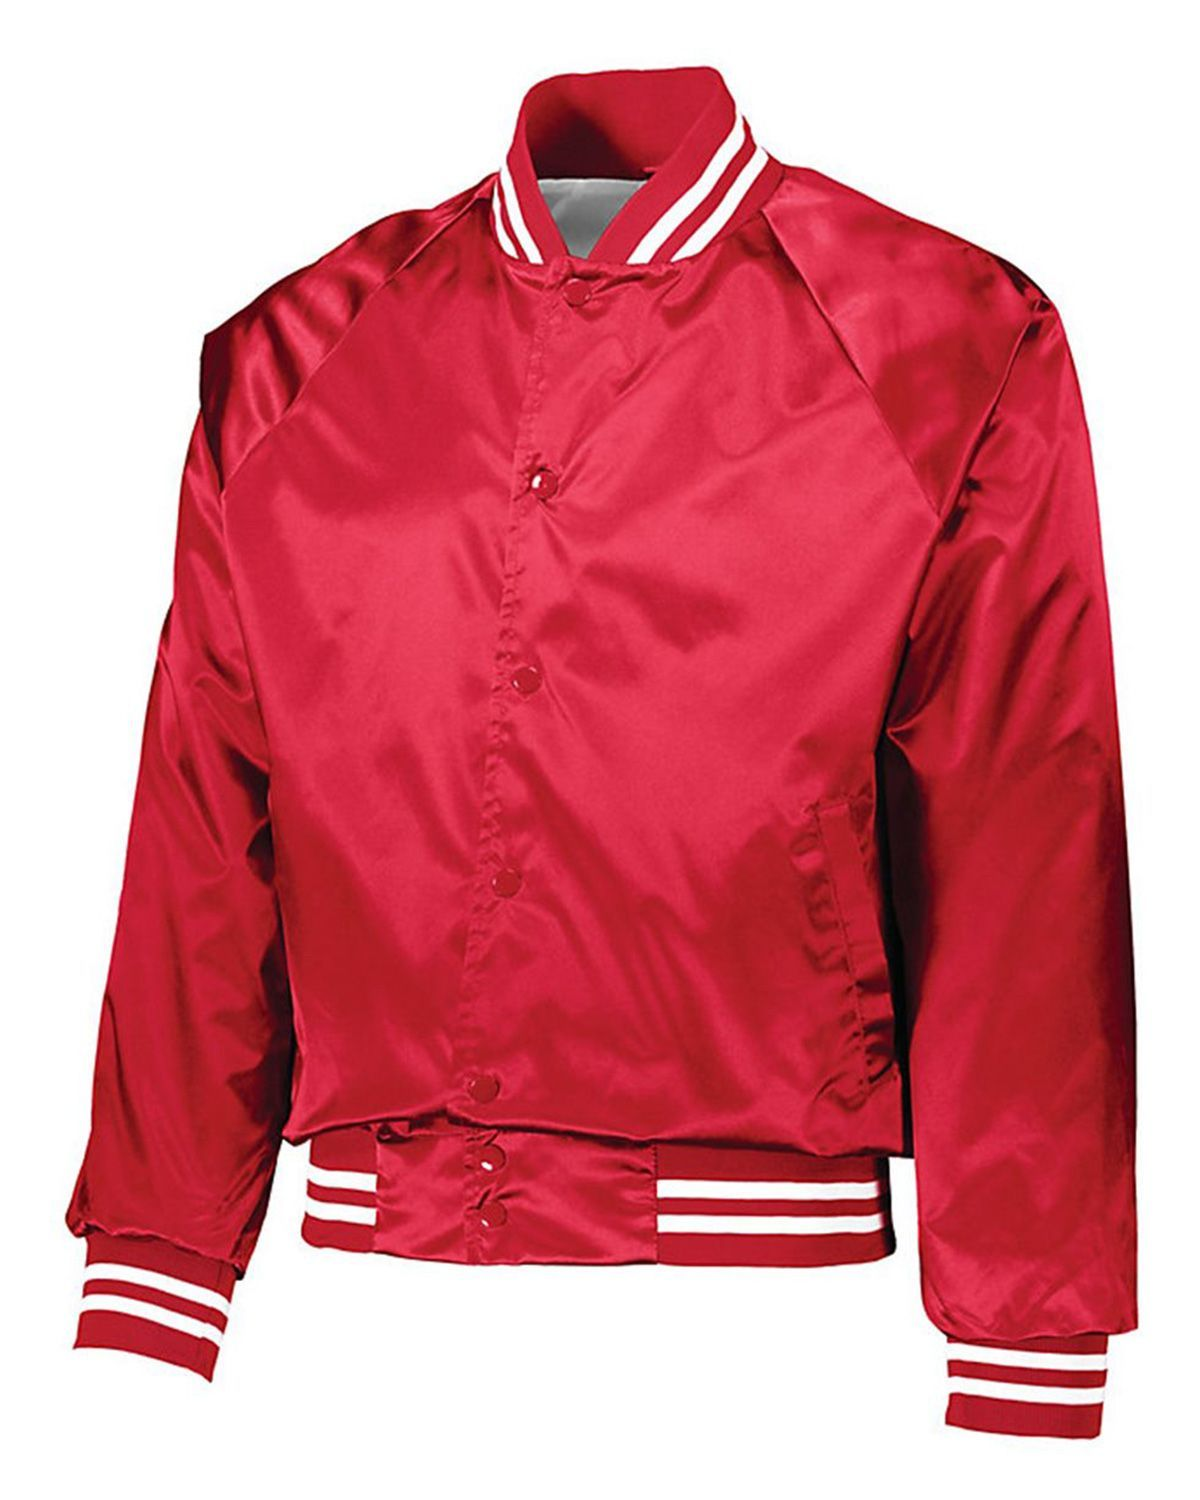 5c1c9ad80ca Augusta Sportswear 3610 Mens Satin Baseball Jacket Striped Trim